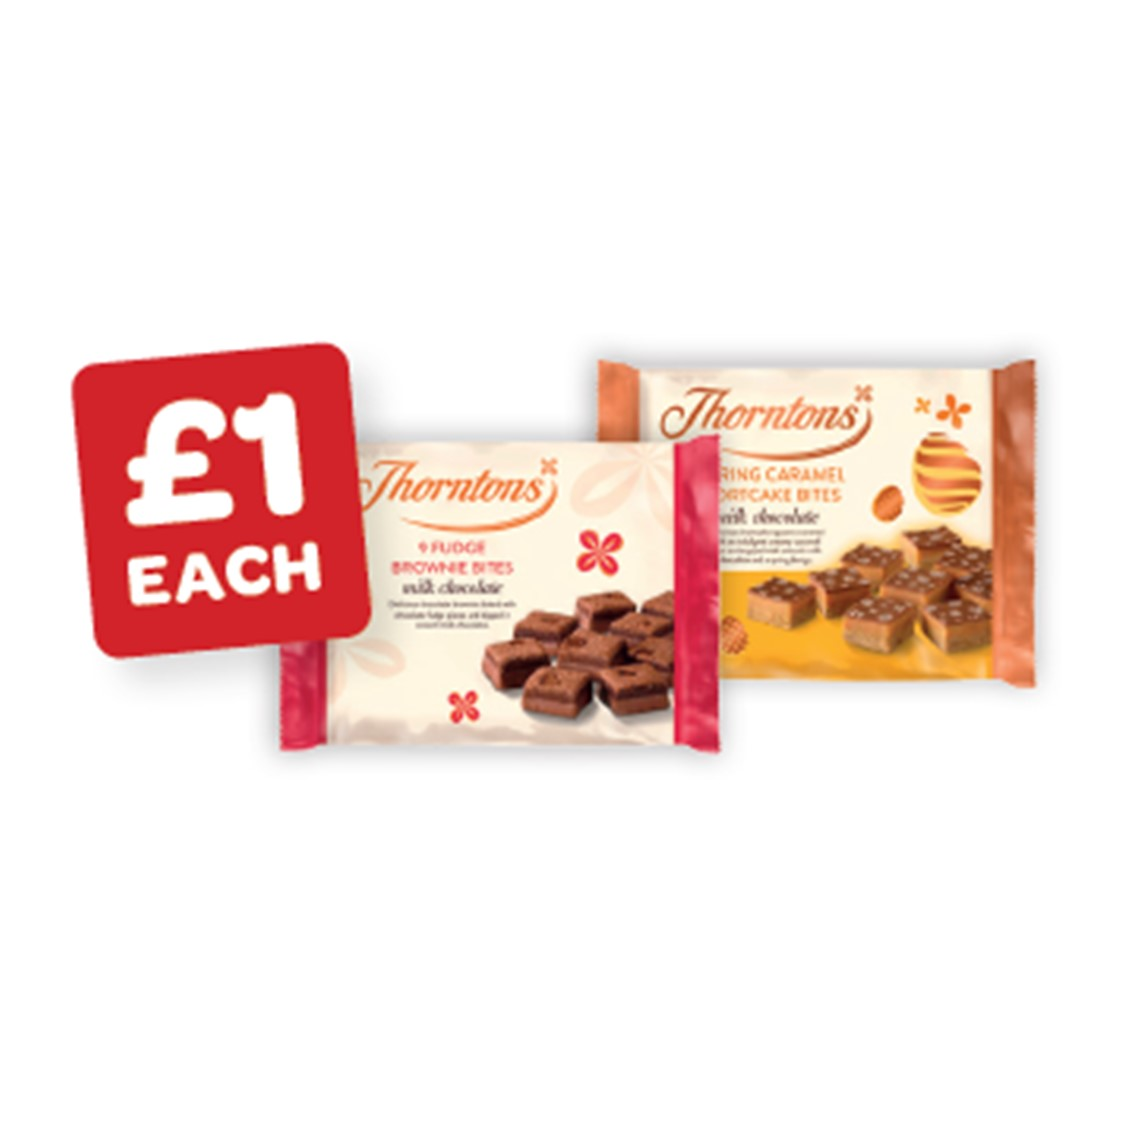 Thorntons Mini Caramel Shortcake Bites / Chocolate Fudge Brownies